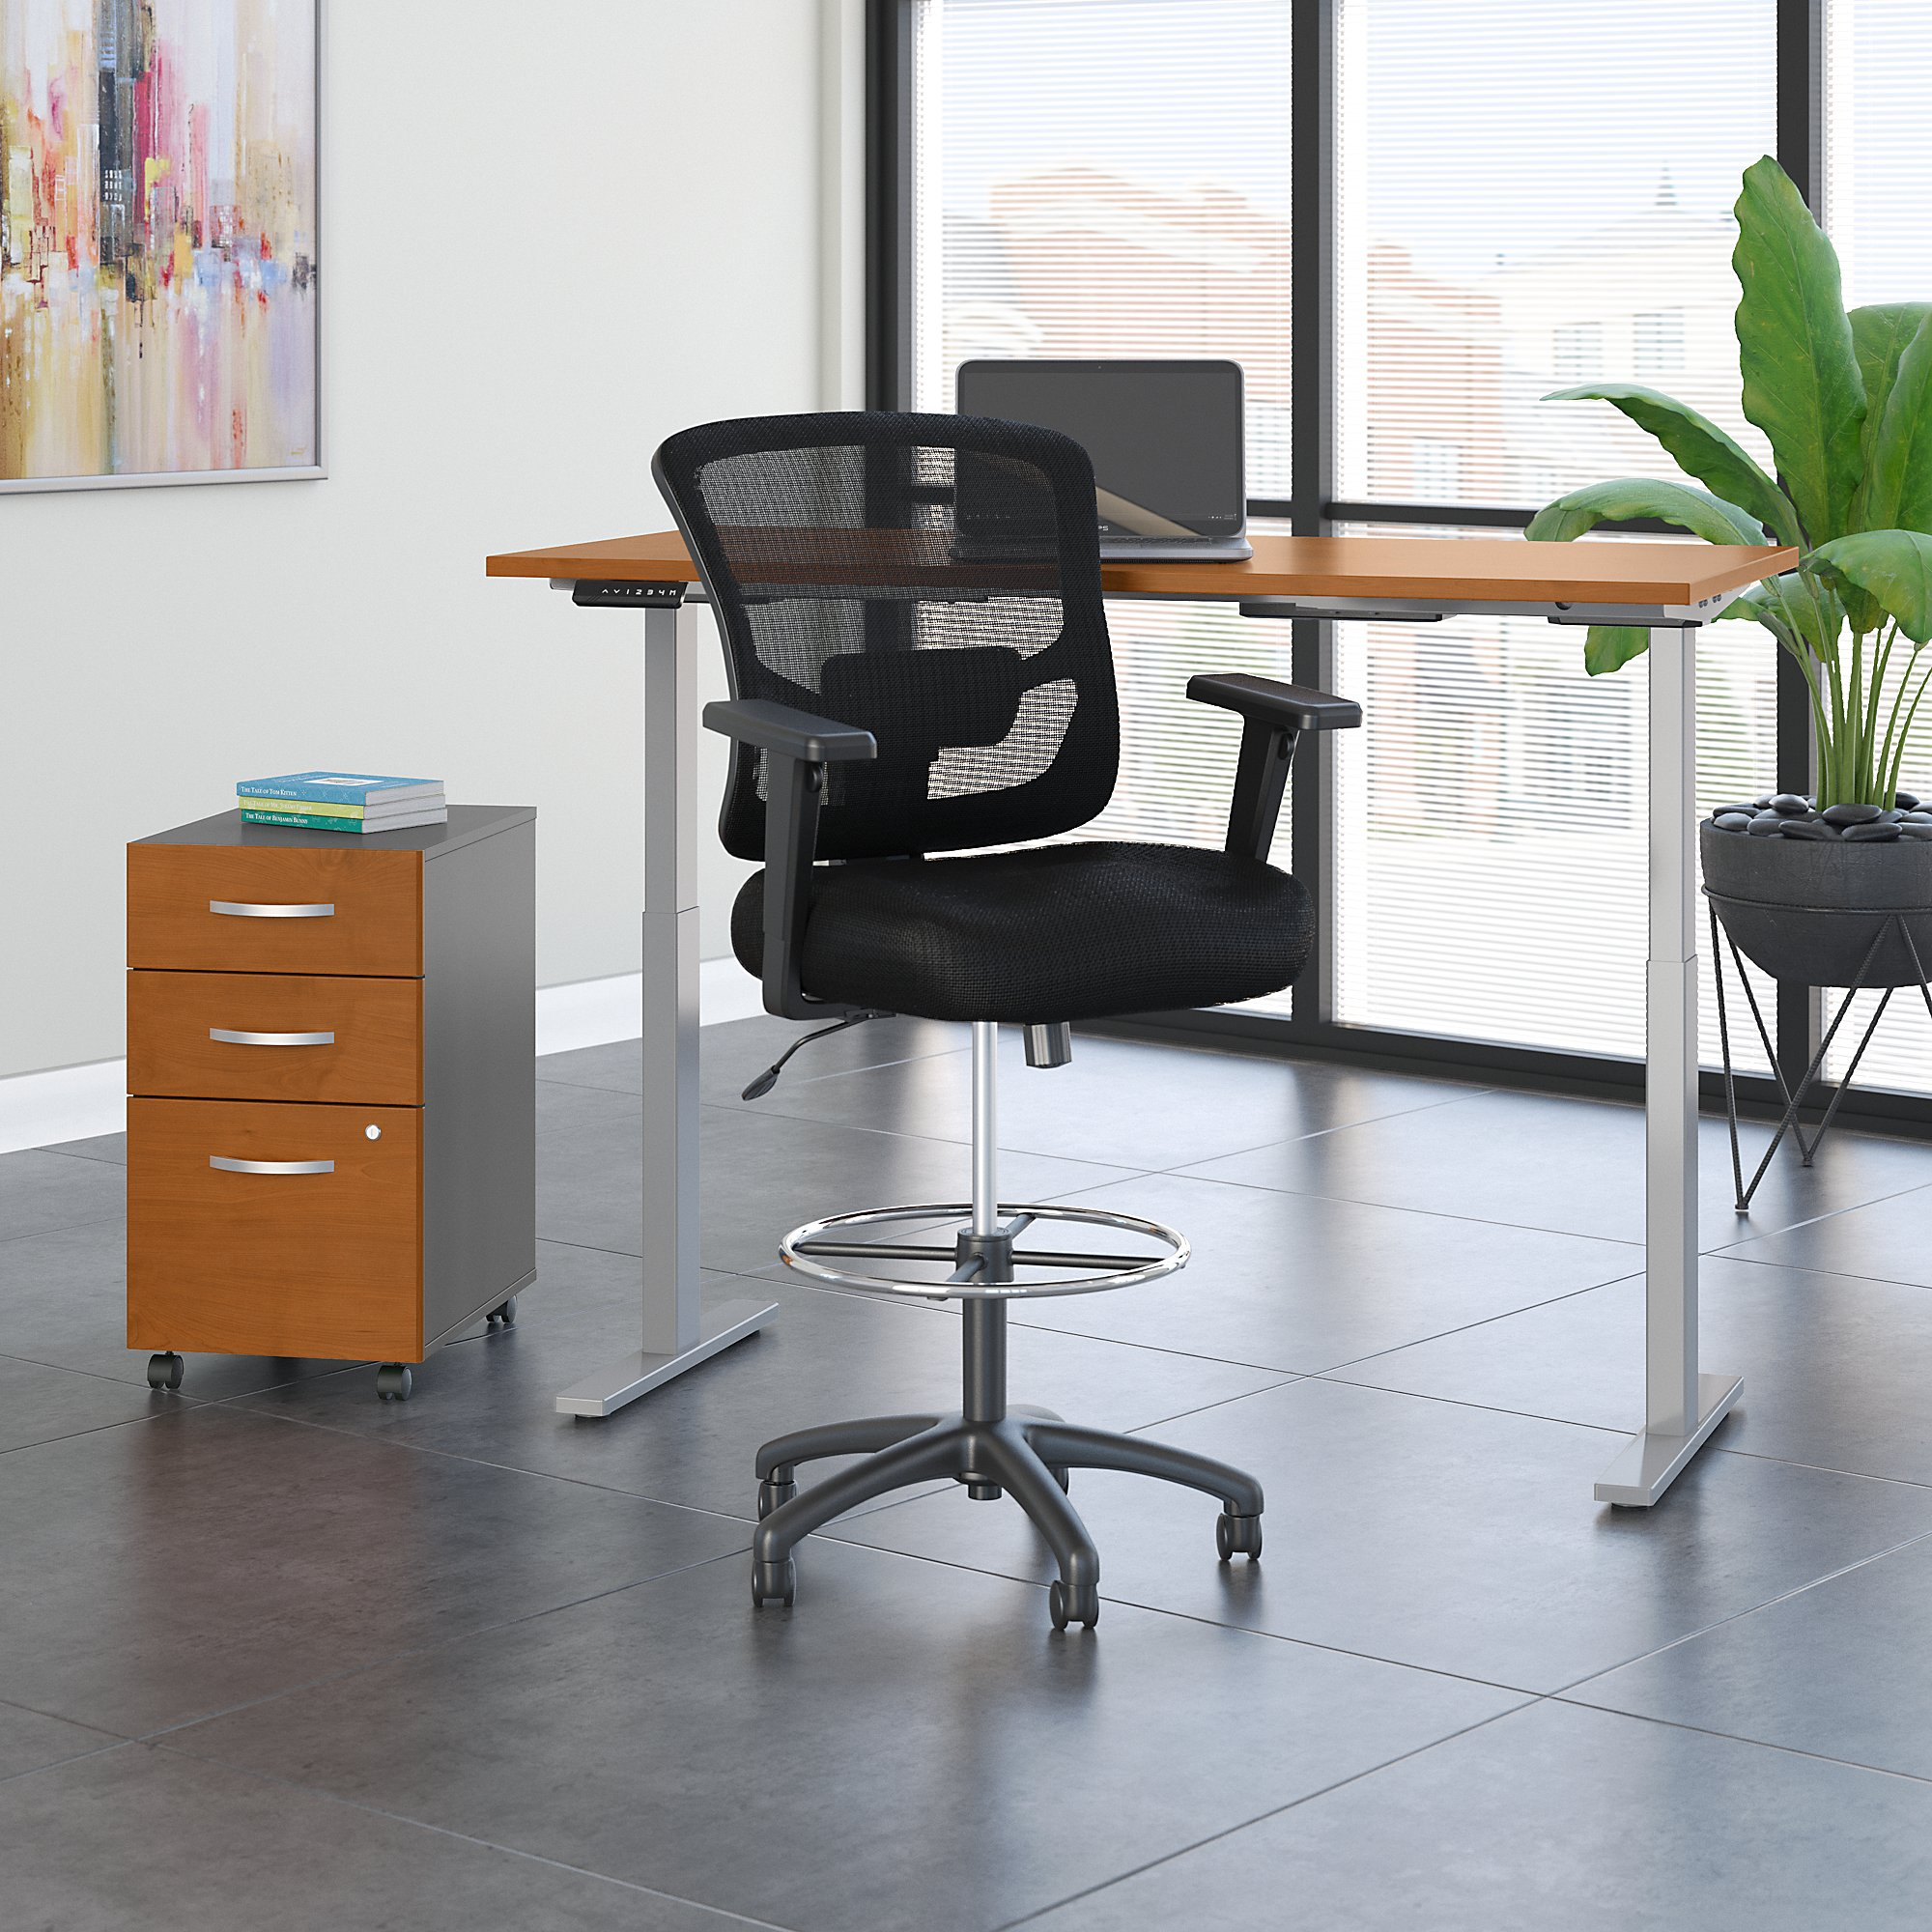 Image of: Move 60 Series By Bush Business Furniture 60w X 30d Height Adjustable Standing Desk With Storage And Drafting Chair